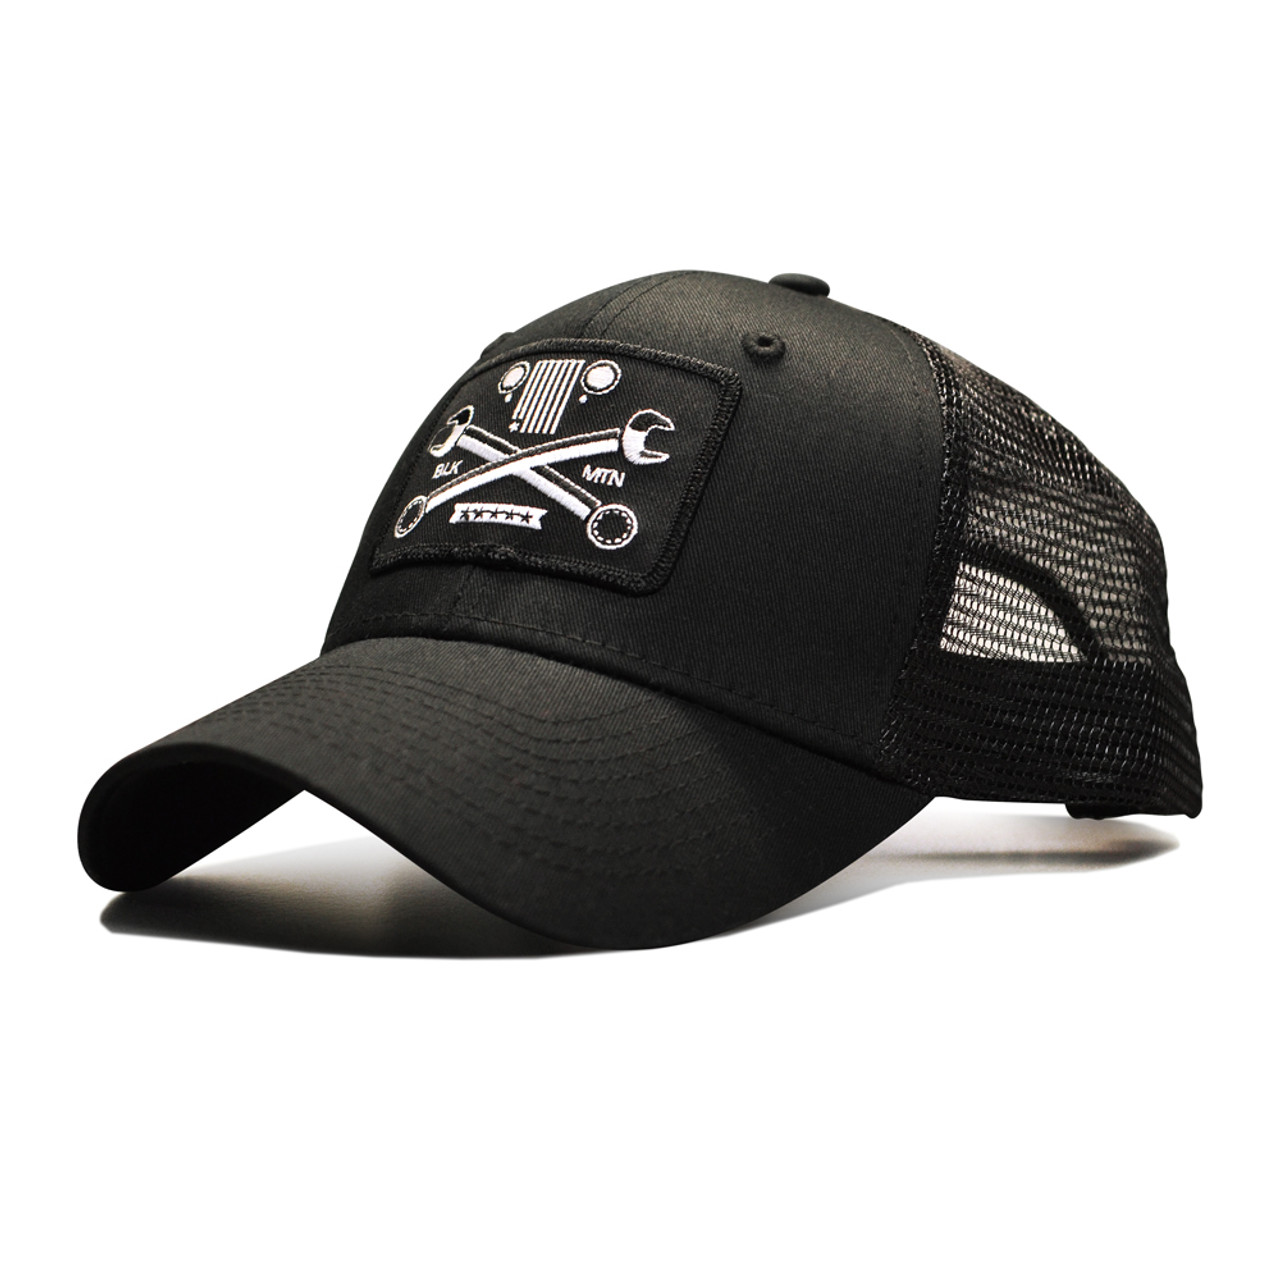 Crossed Wrench Snapback Cap - Black Mountain Jeep d32d090583f